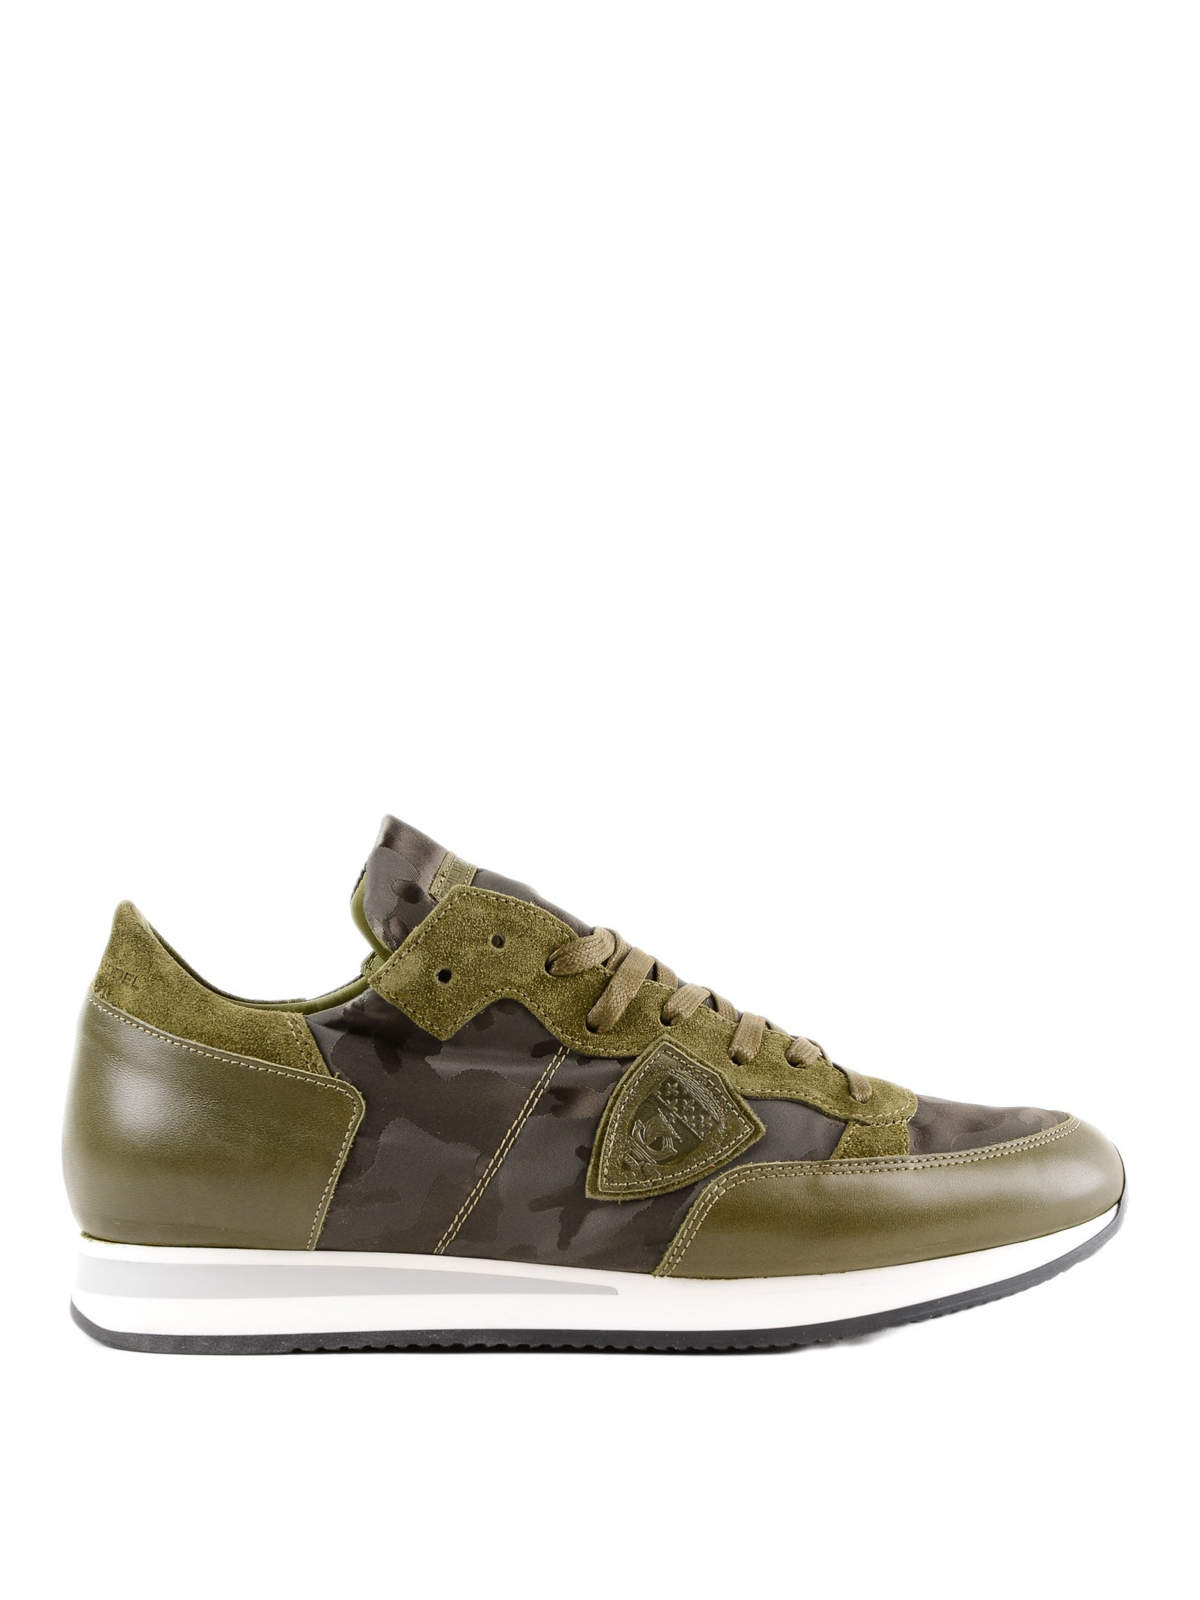 Green camouflage Tropez sneakers